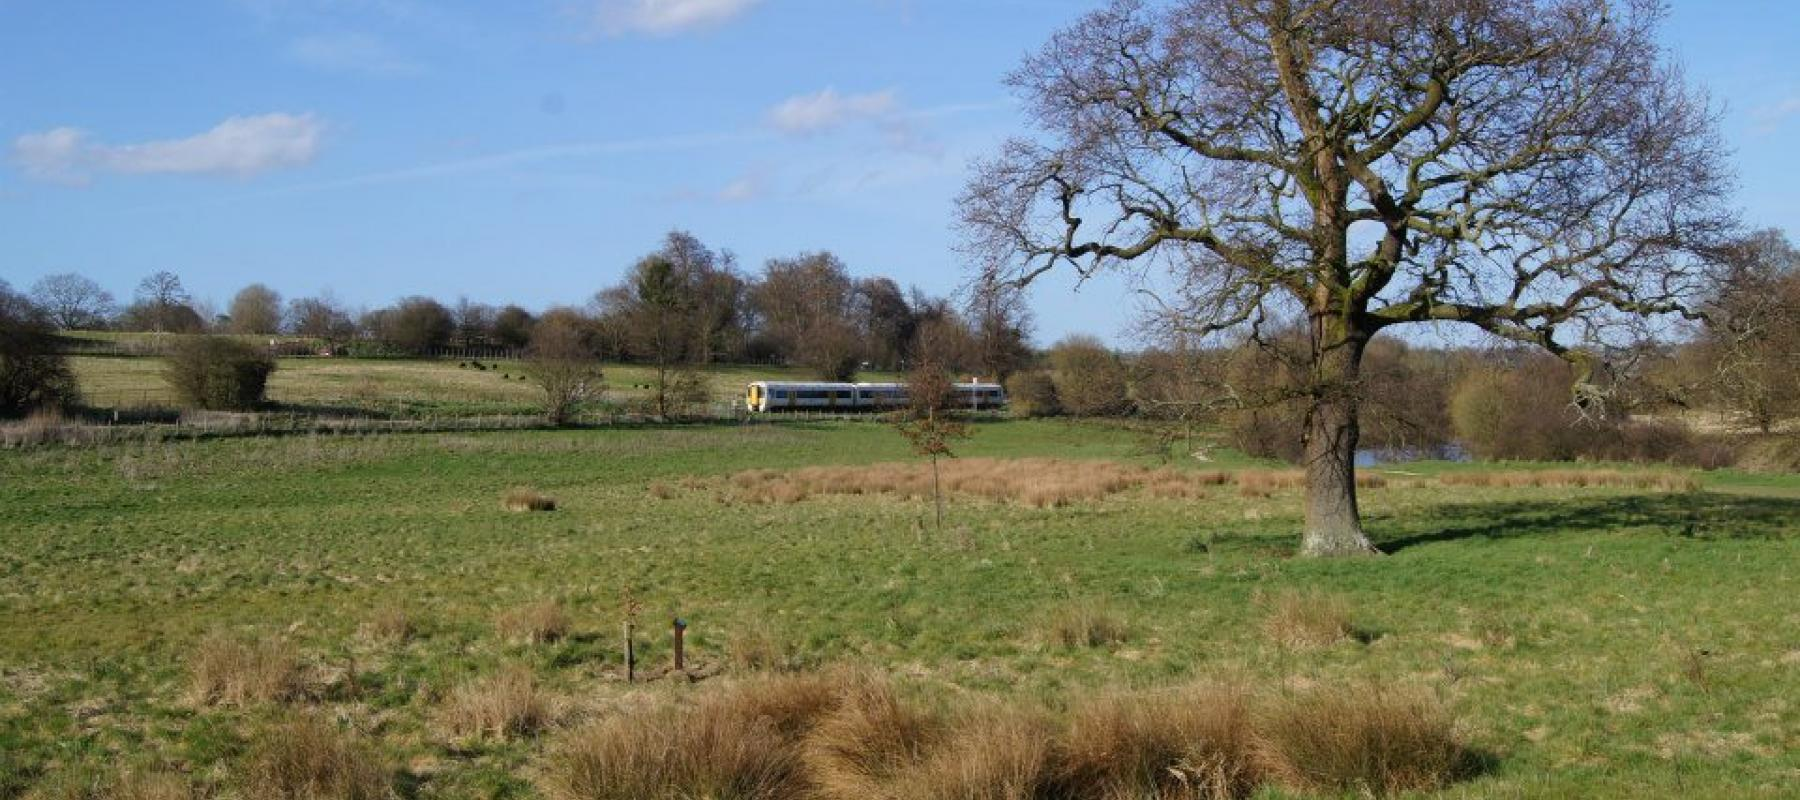 Train travelling through picturesque countryside along the Medway Valley Line. South East UK.